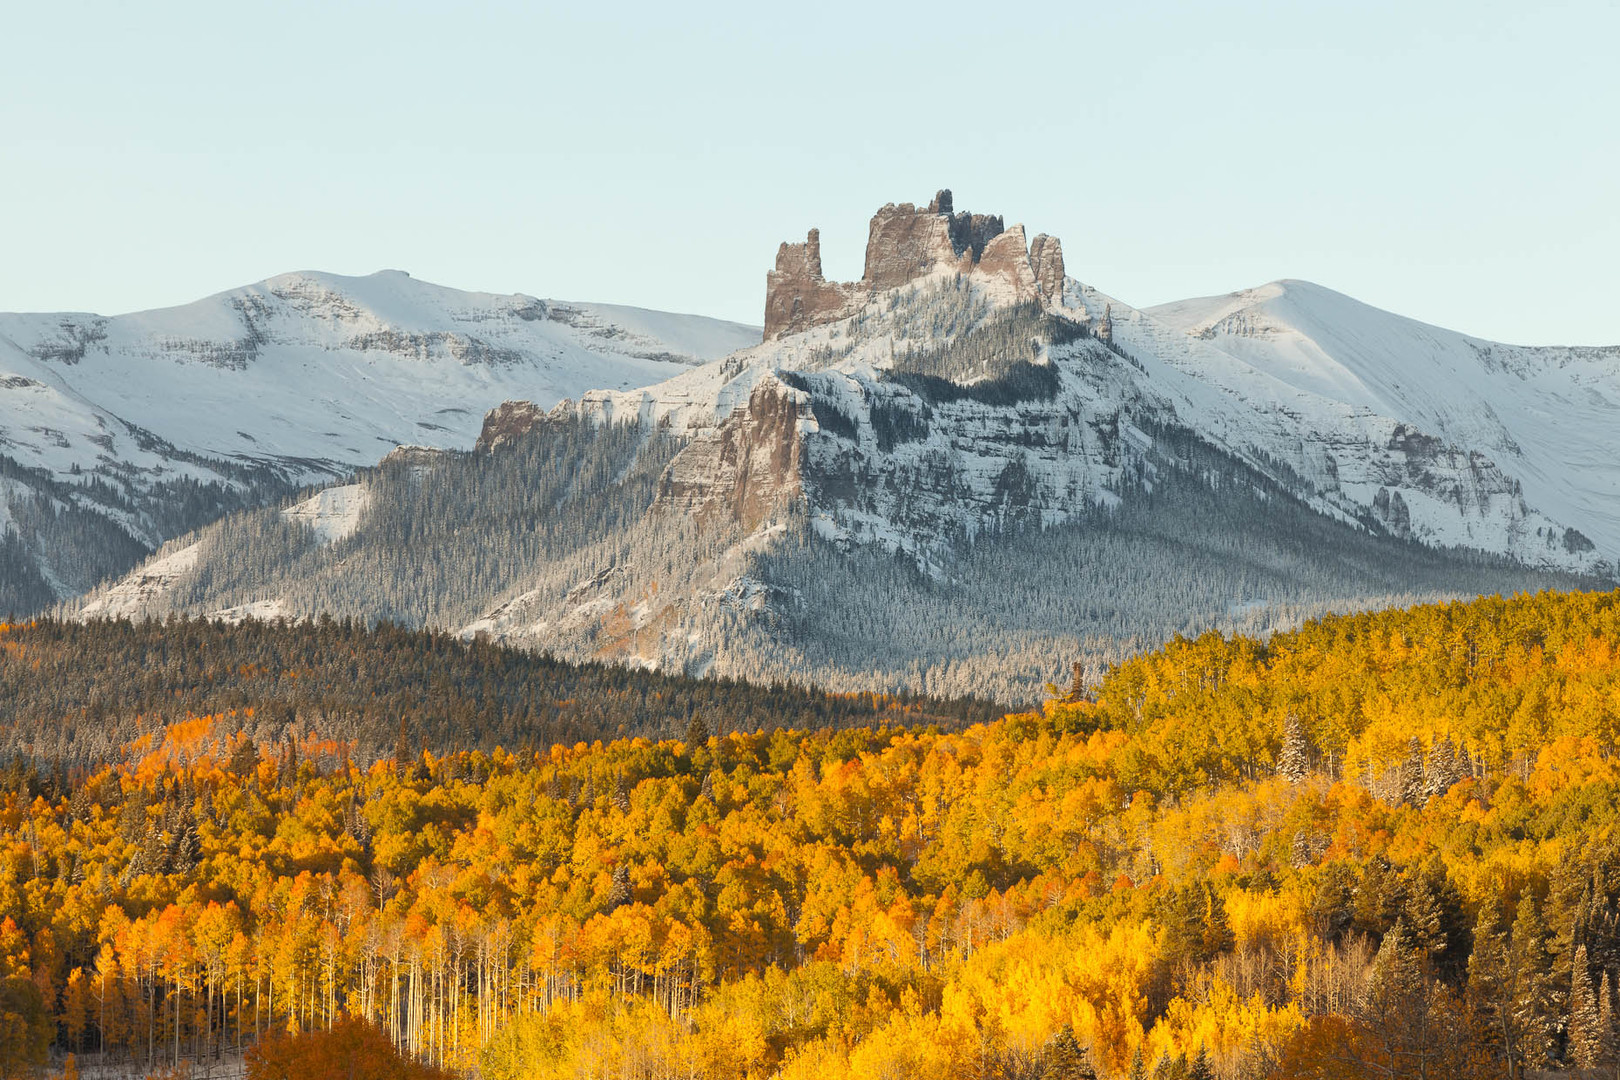 The Castles in fall